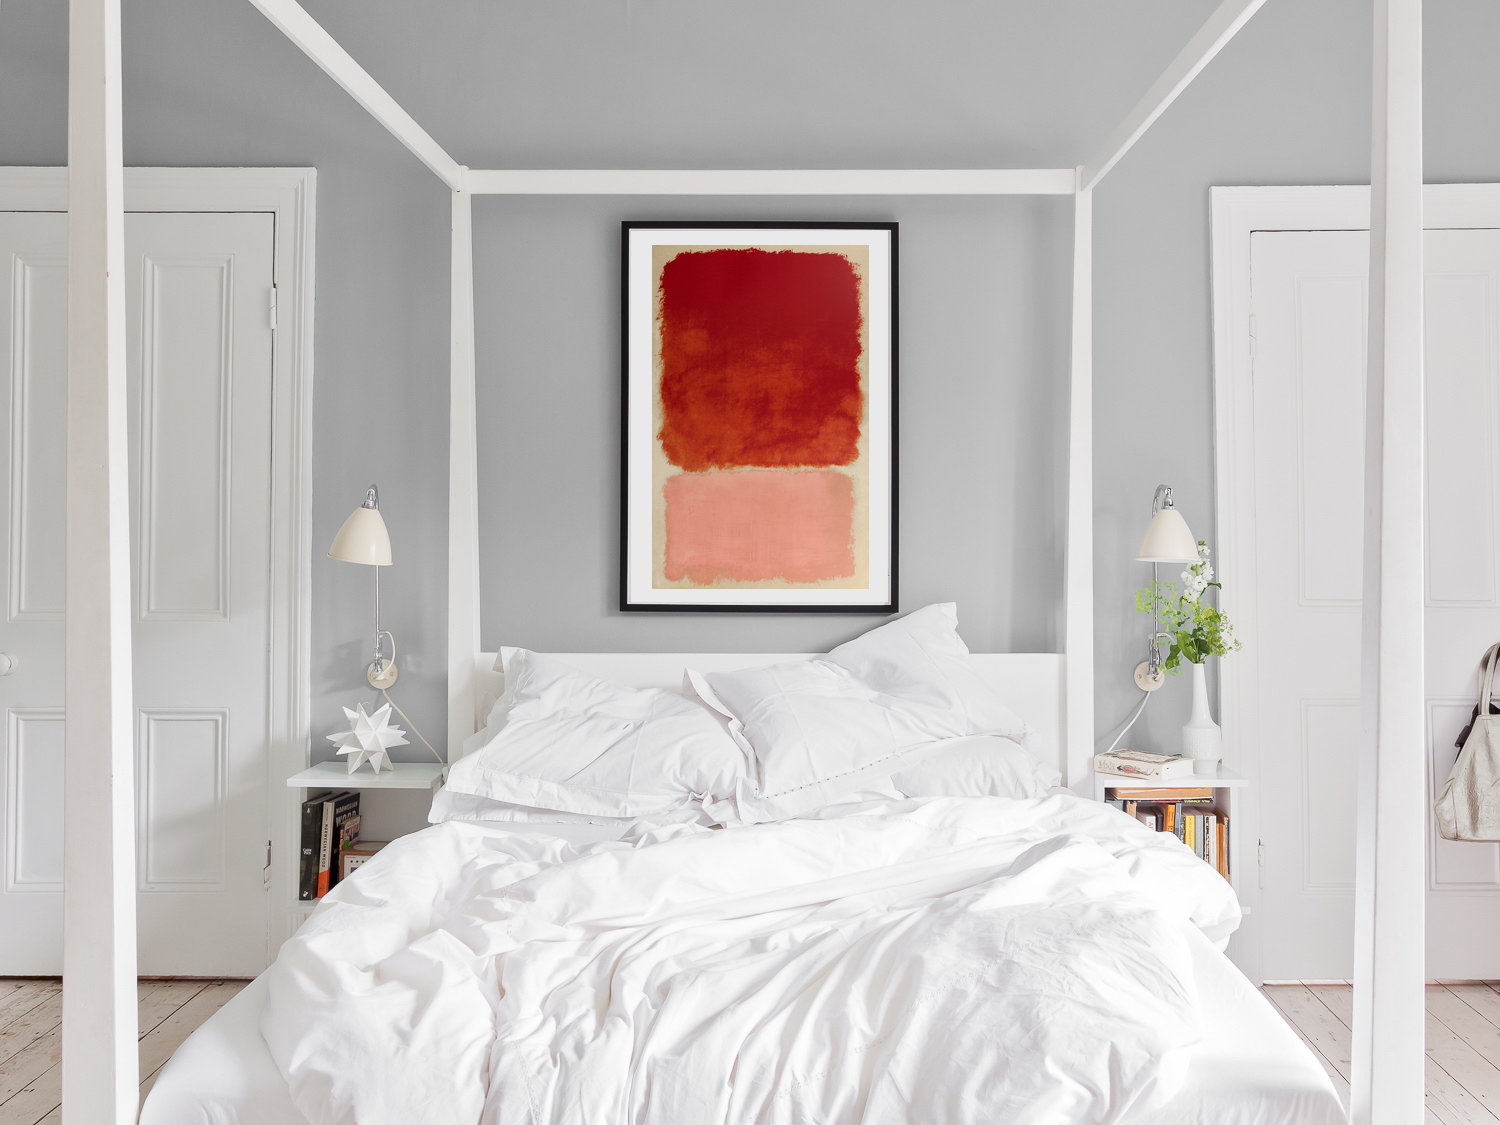 10 ways to make your bedroom romantic with art   King & McGaw